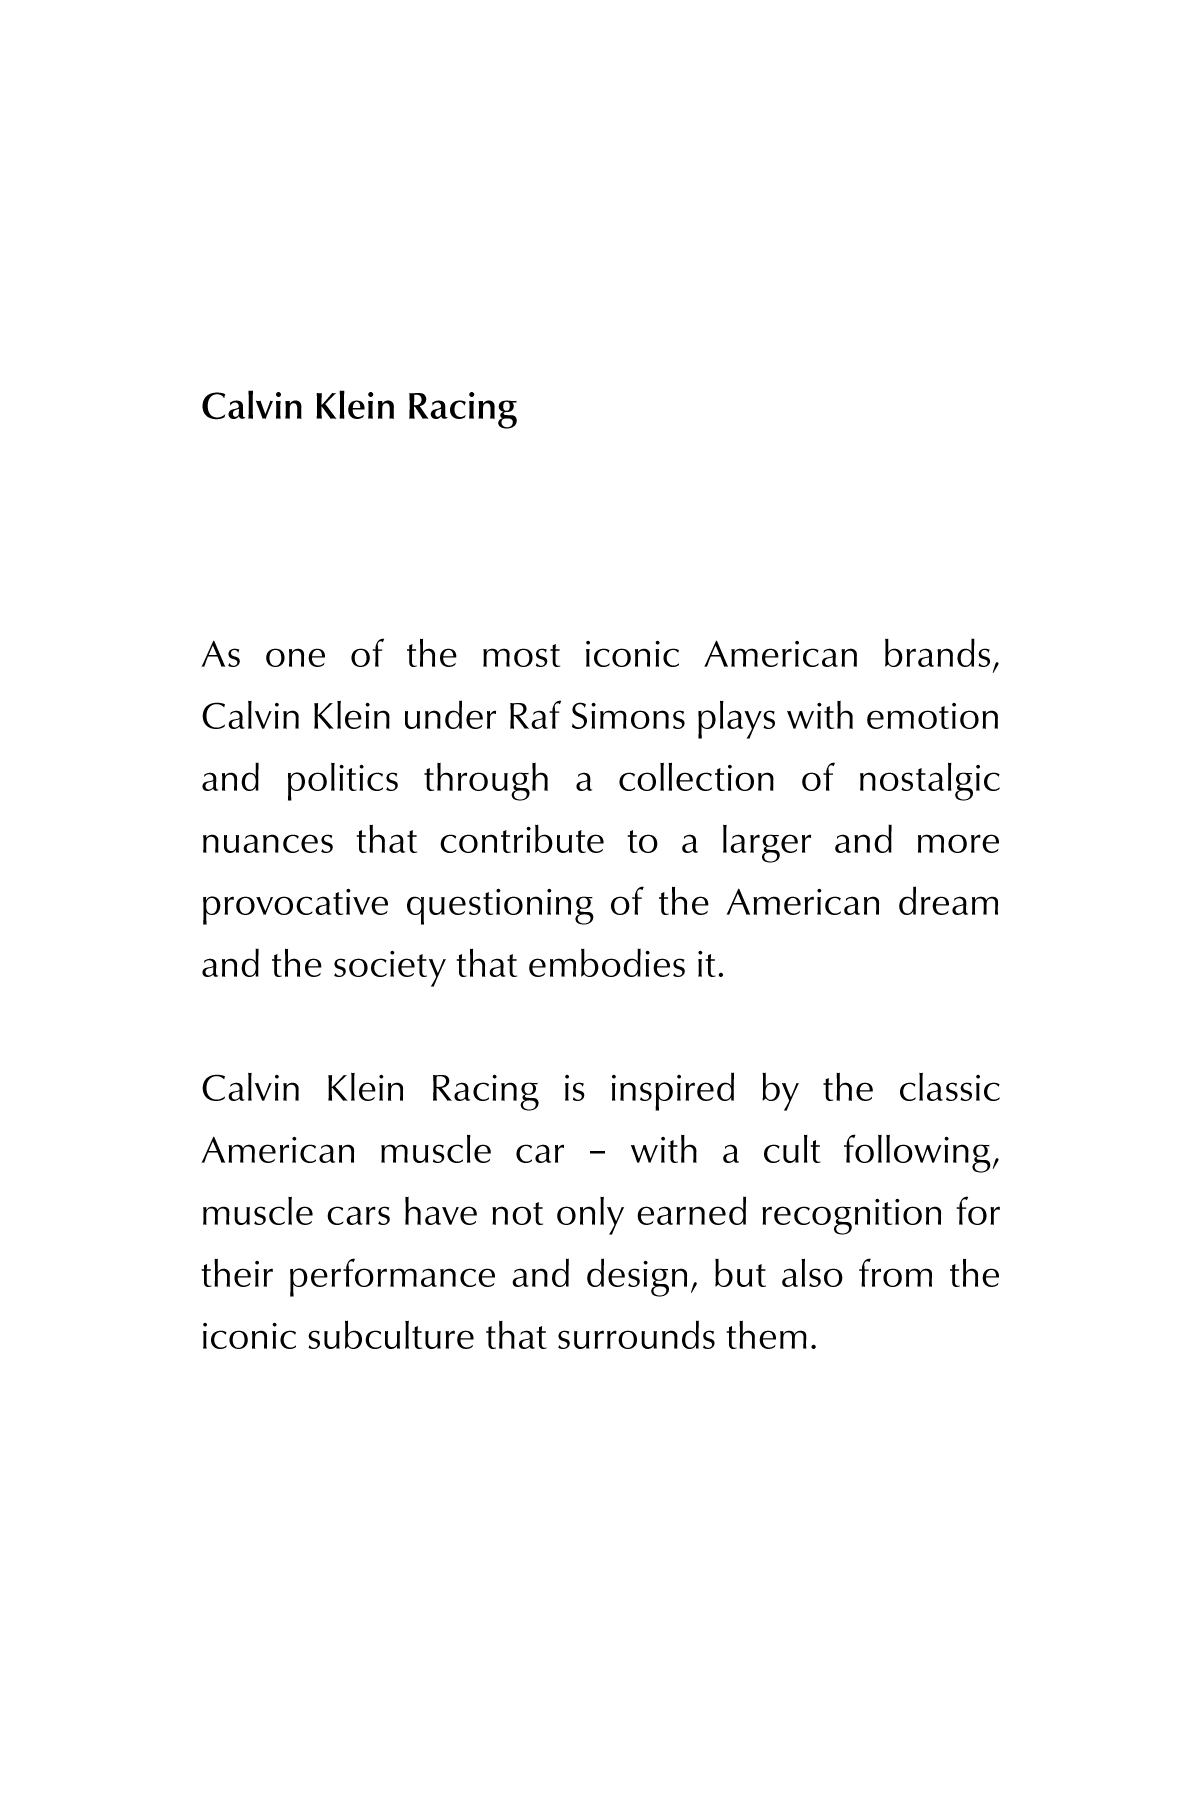 Calvin Klein Racing